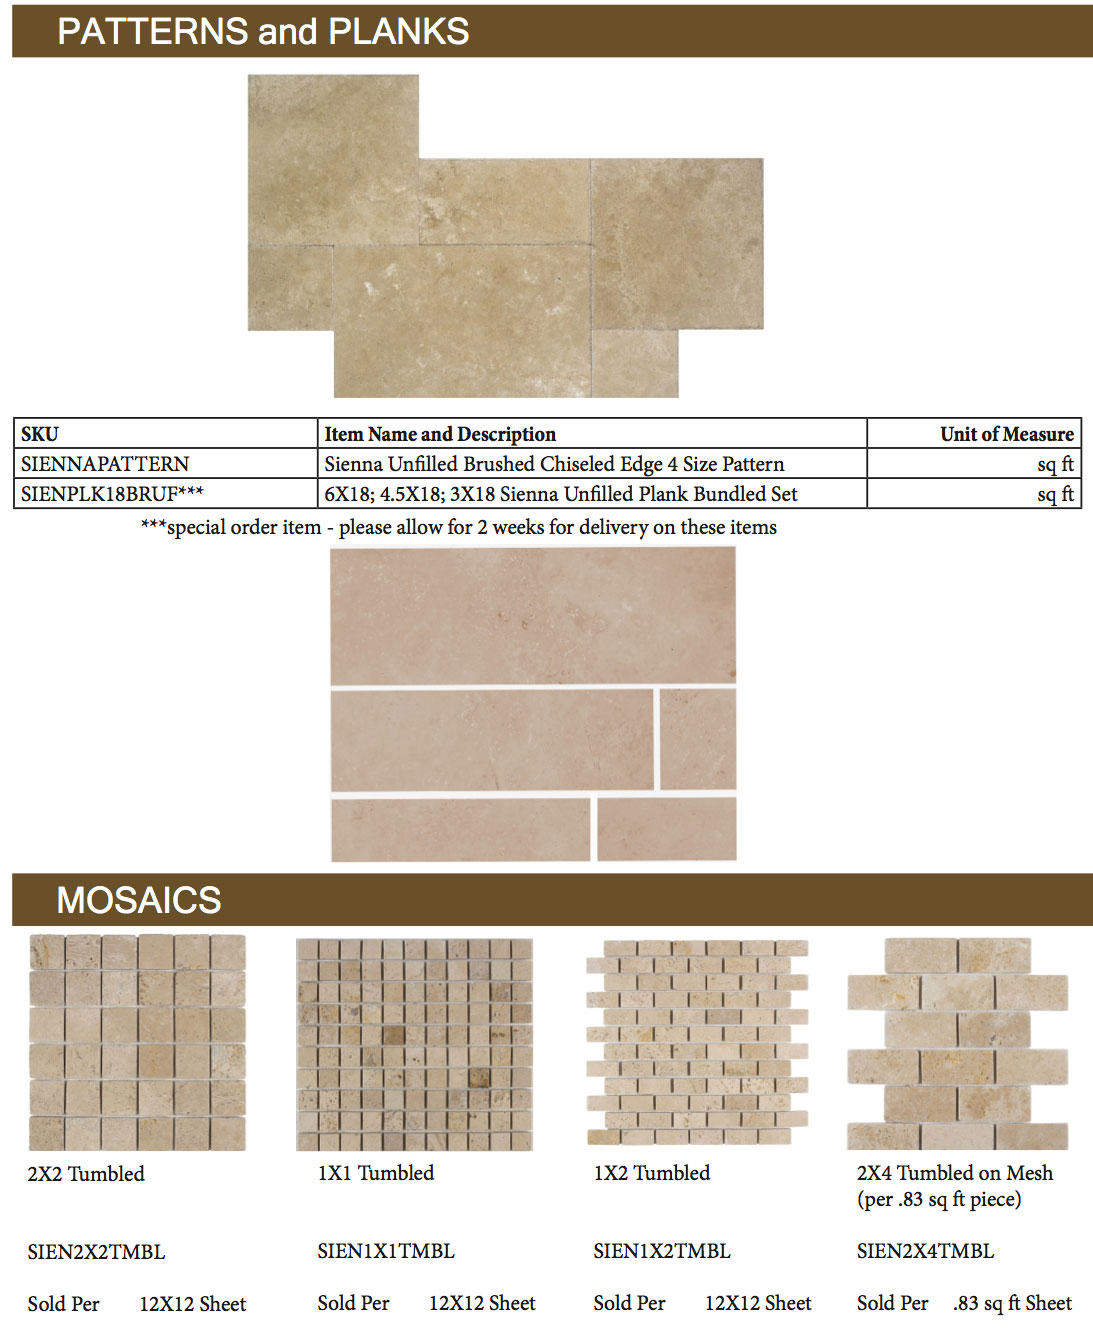 Sienna-Travertine-Patterns-and-Planks